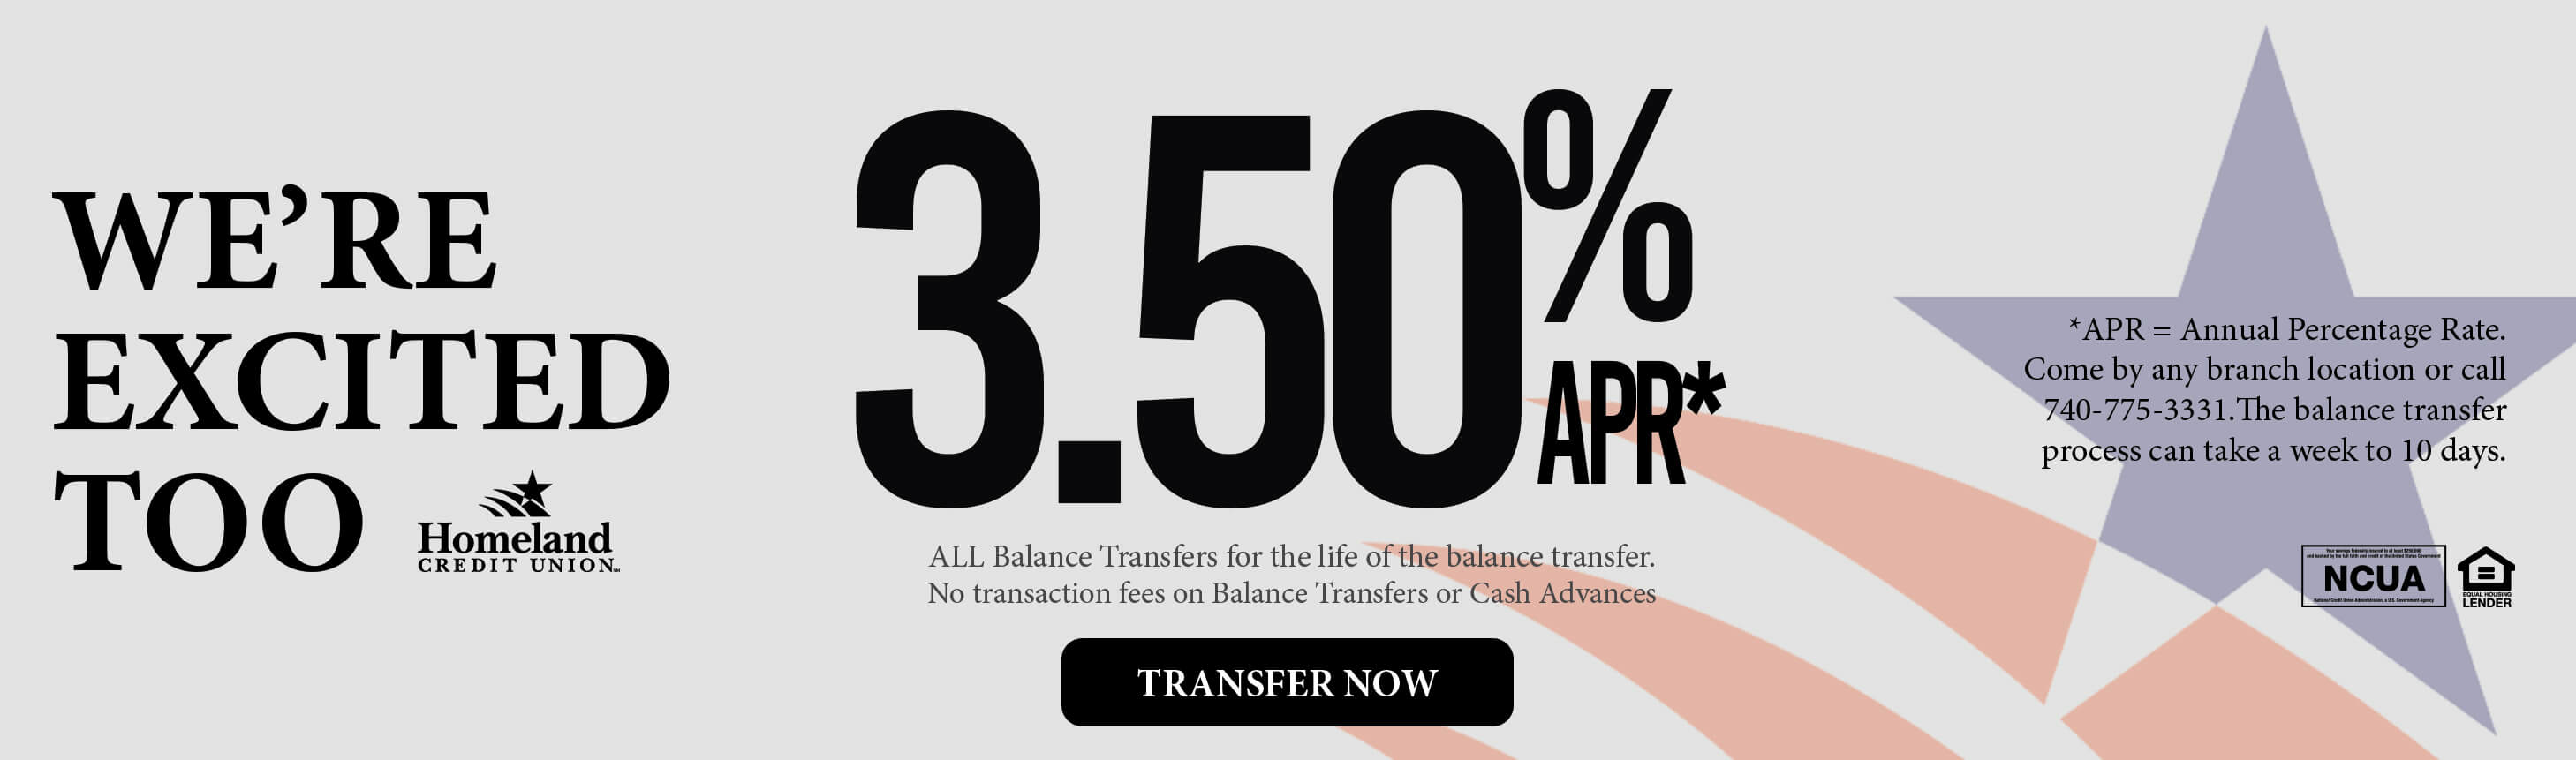 We're excited too! 3.50% APR* ALL balance transfers for the life of the balance transfers. No transaction fees on balance transfers or cash advances. *APR = Annual percentage rate. Come by and branch location, call 740-775-3331, or visit https://www.homelandcu.com/lending/balance-transfer-form. The balance transfer process can take up to a week to 10 days.